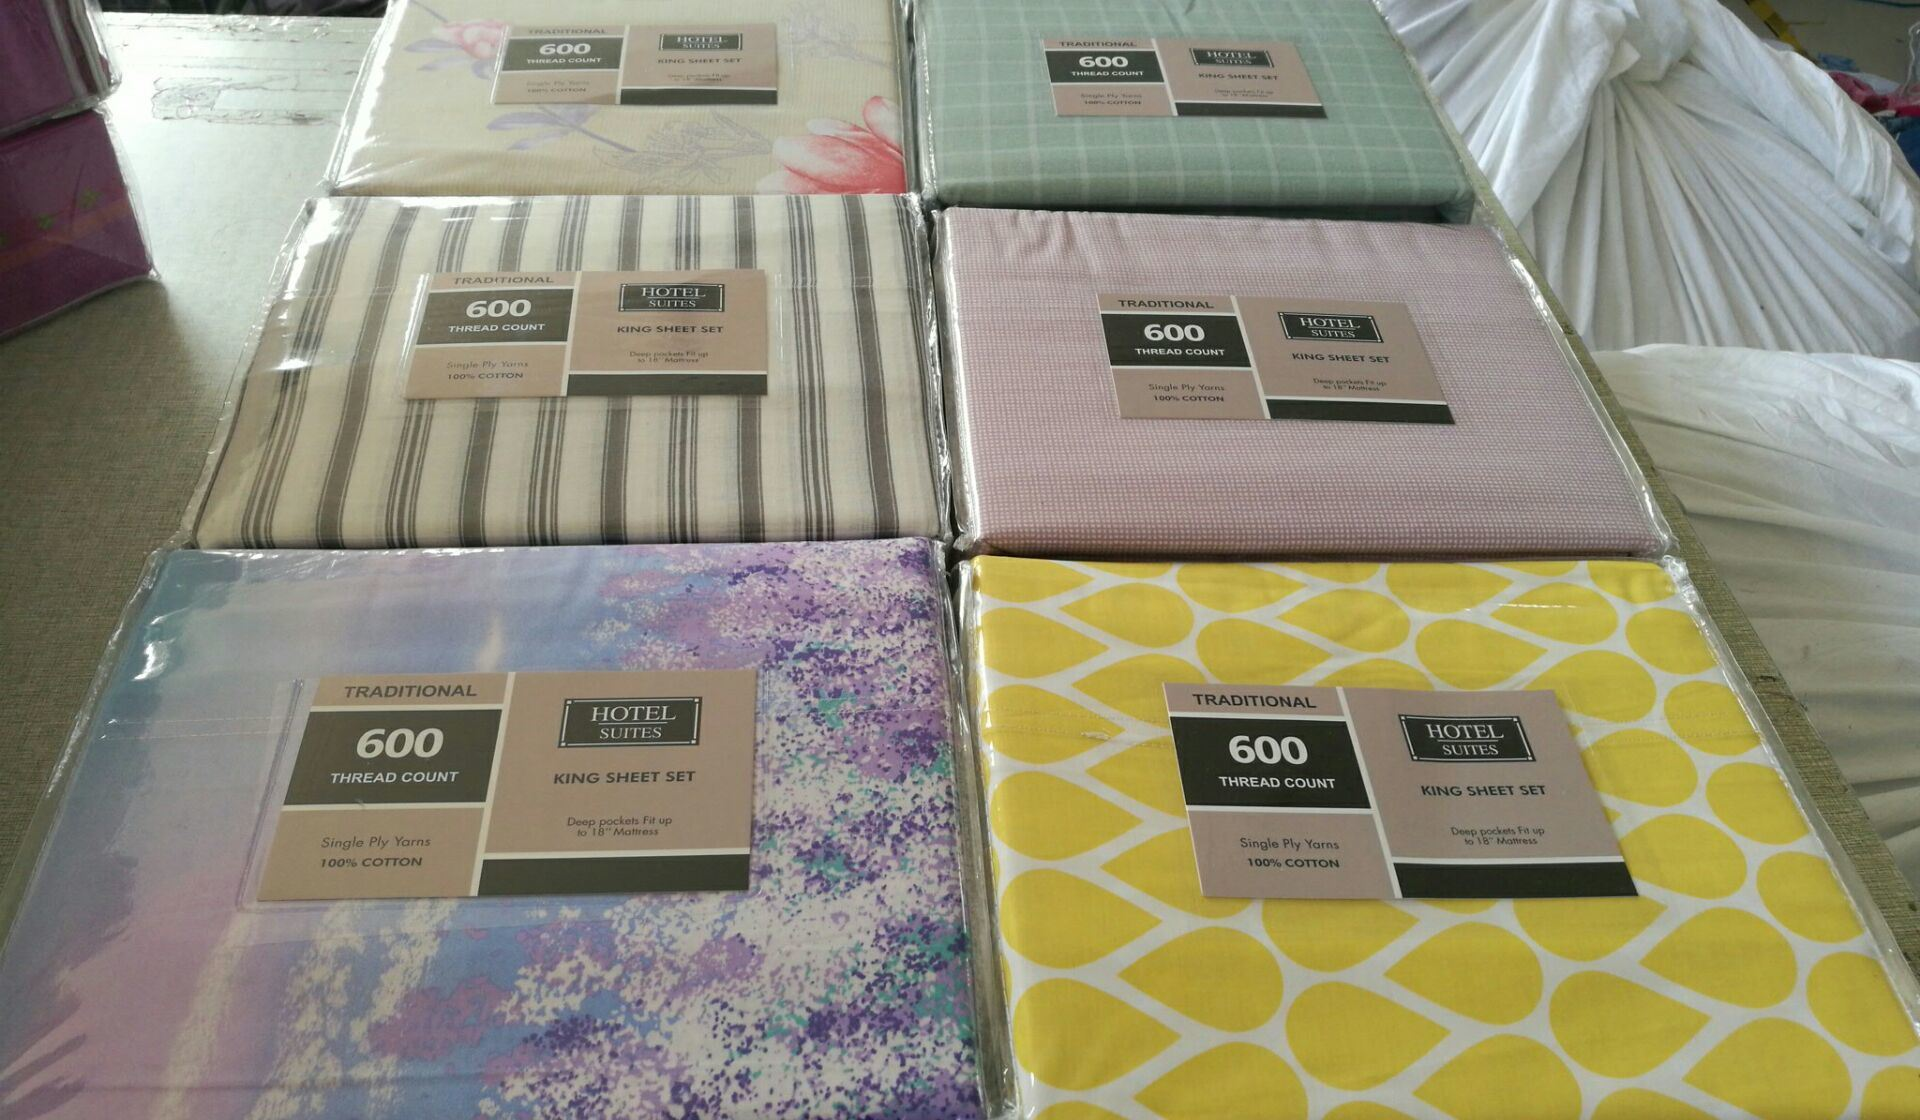 China 200t Pure Cotton Print Bed Sheets Bedding Set Stock Fabric Cheap Mixted Design China Sheet Set And Bed Sheets Price